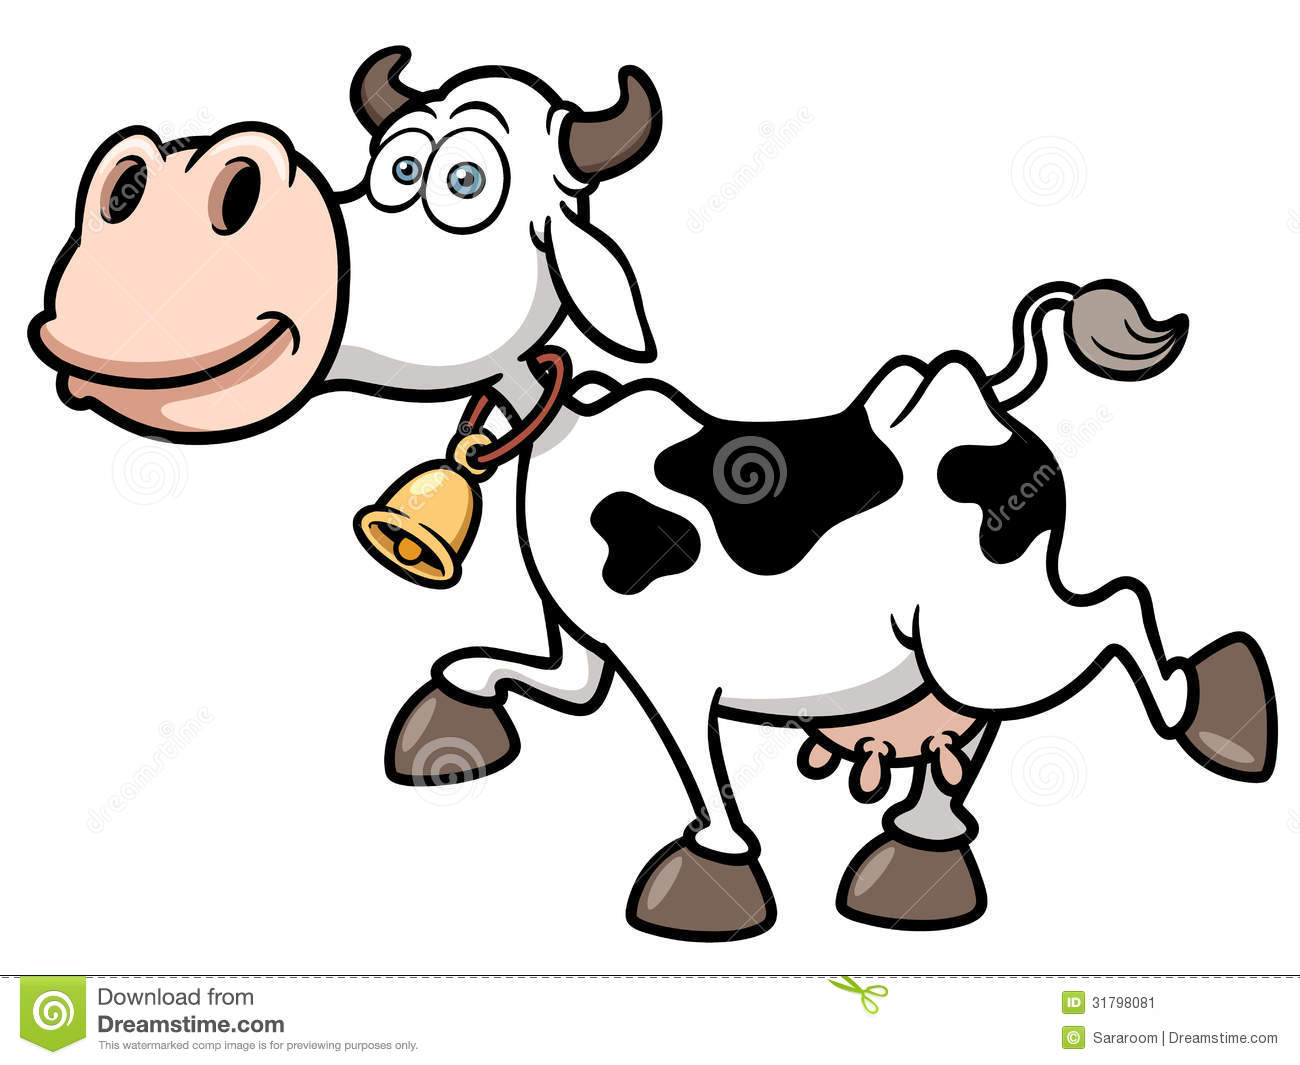 Cartoon Cow Stock Image - Image: 31798081